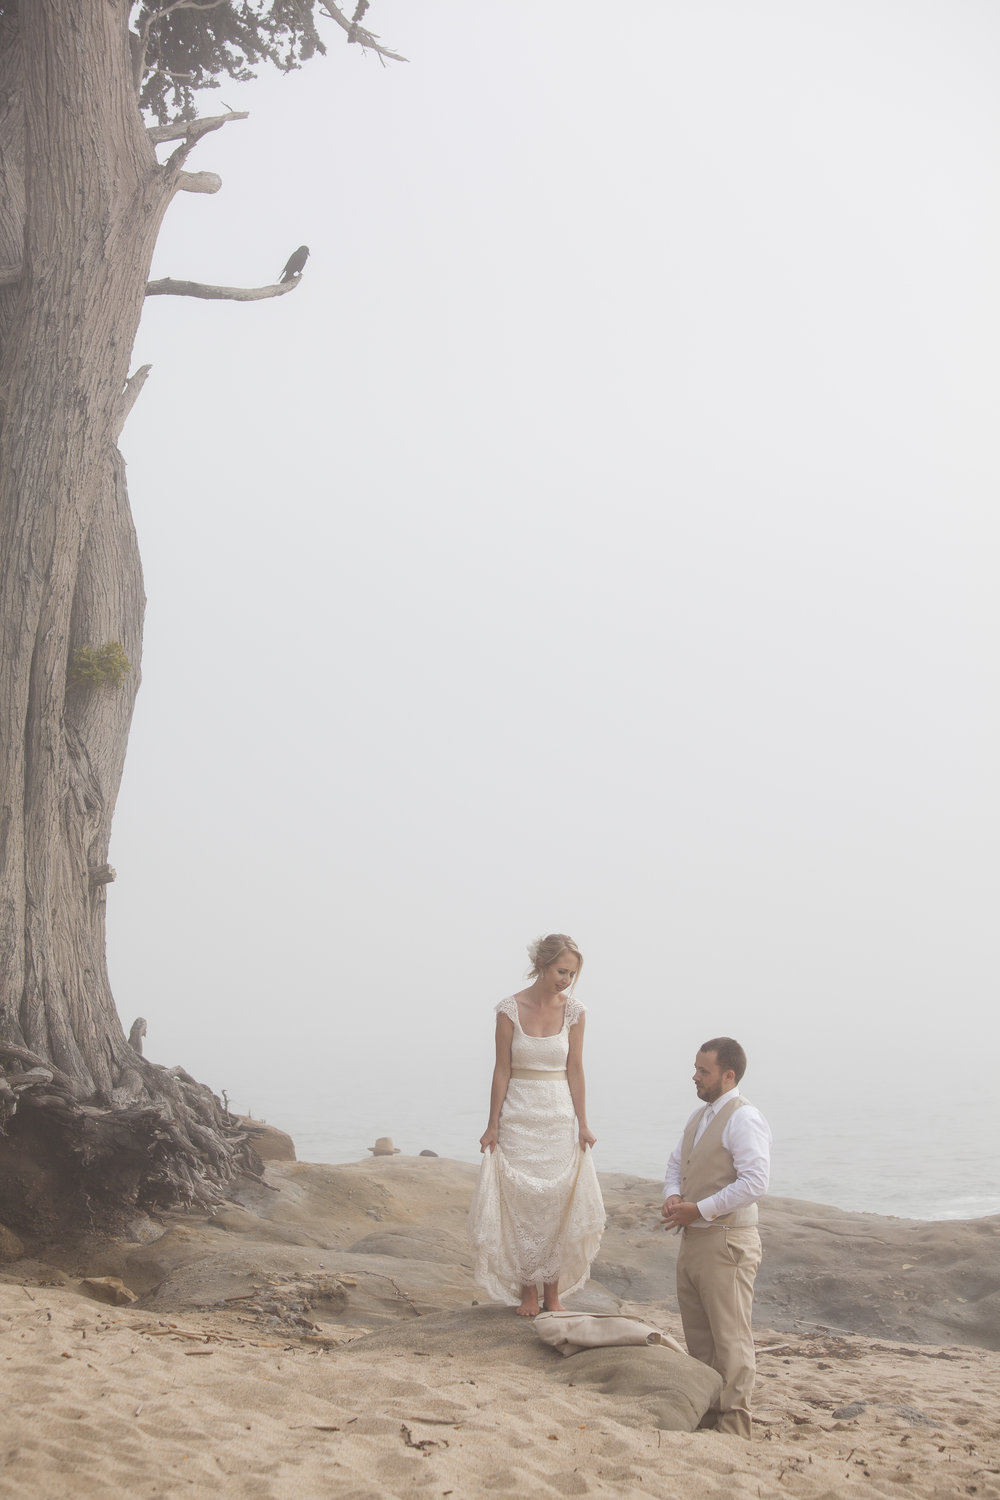 The bride is standing above the groom on a rock.